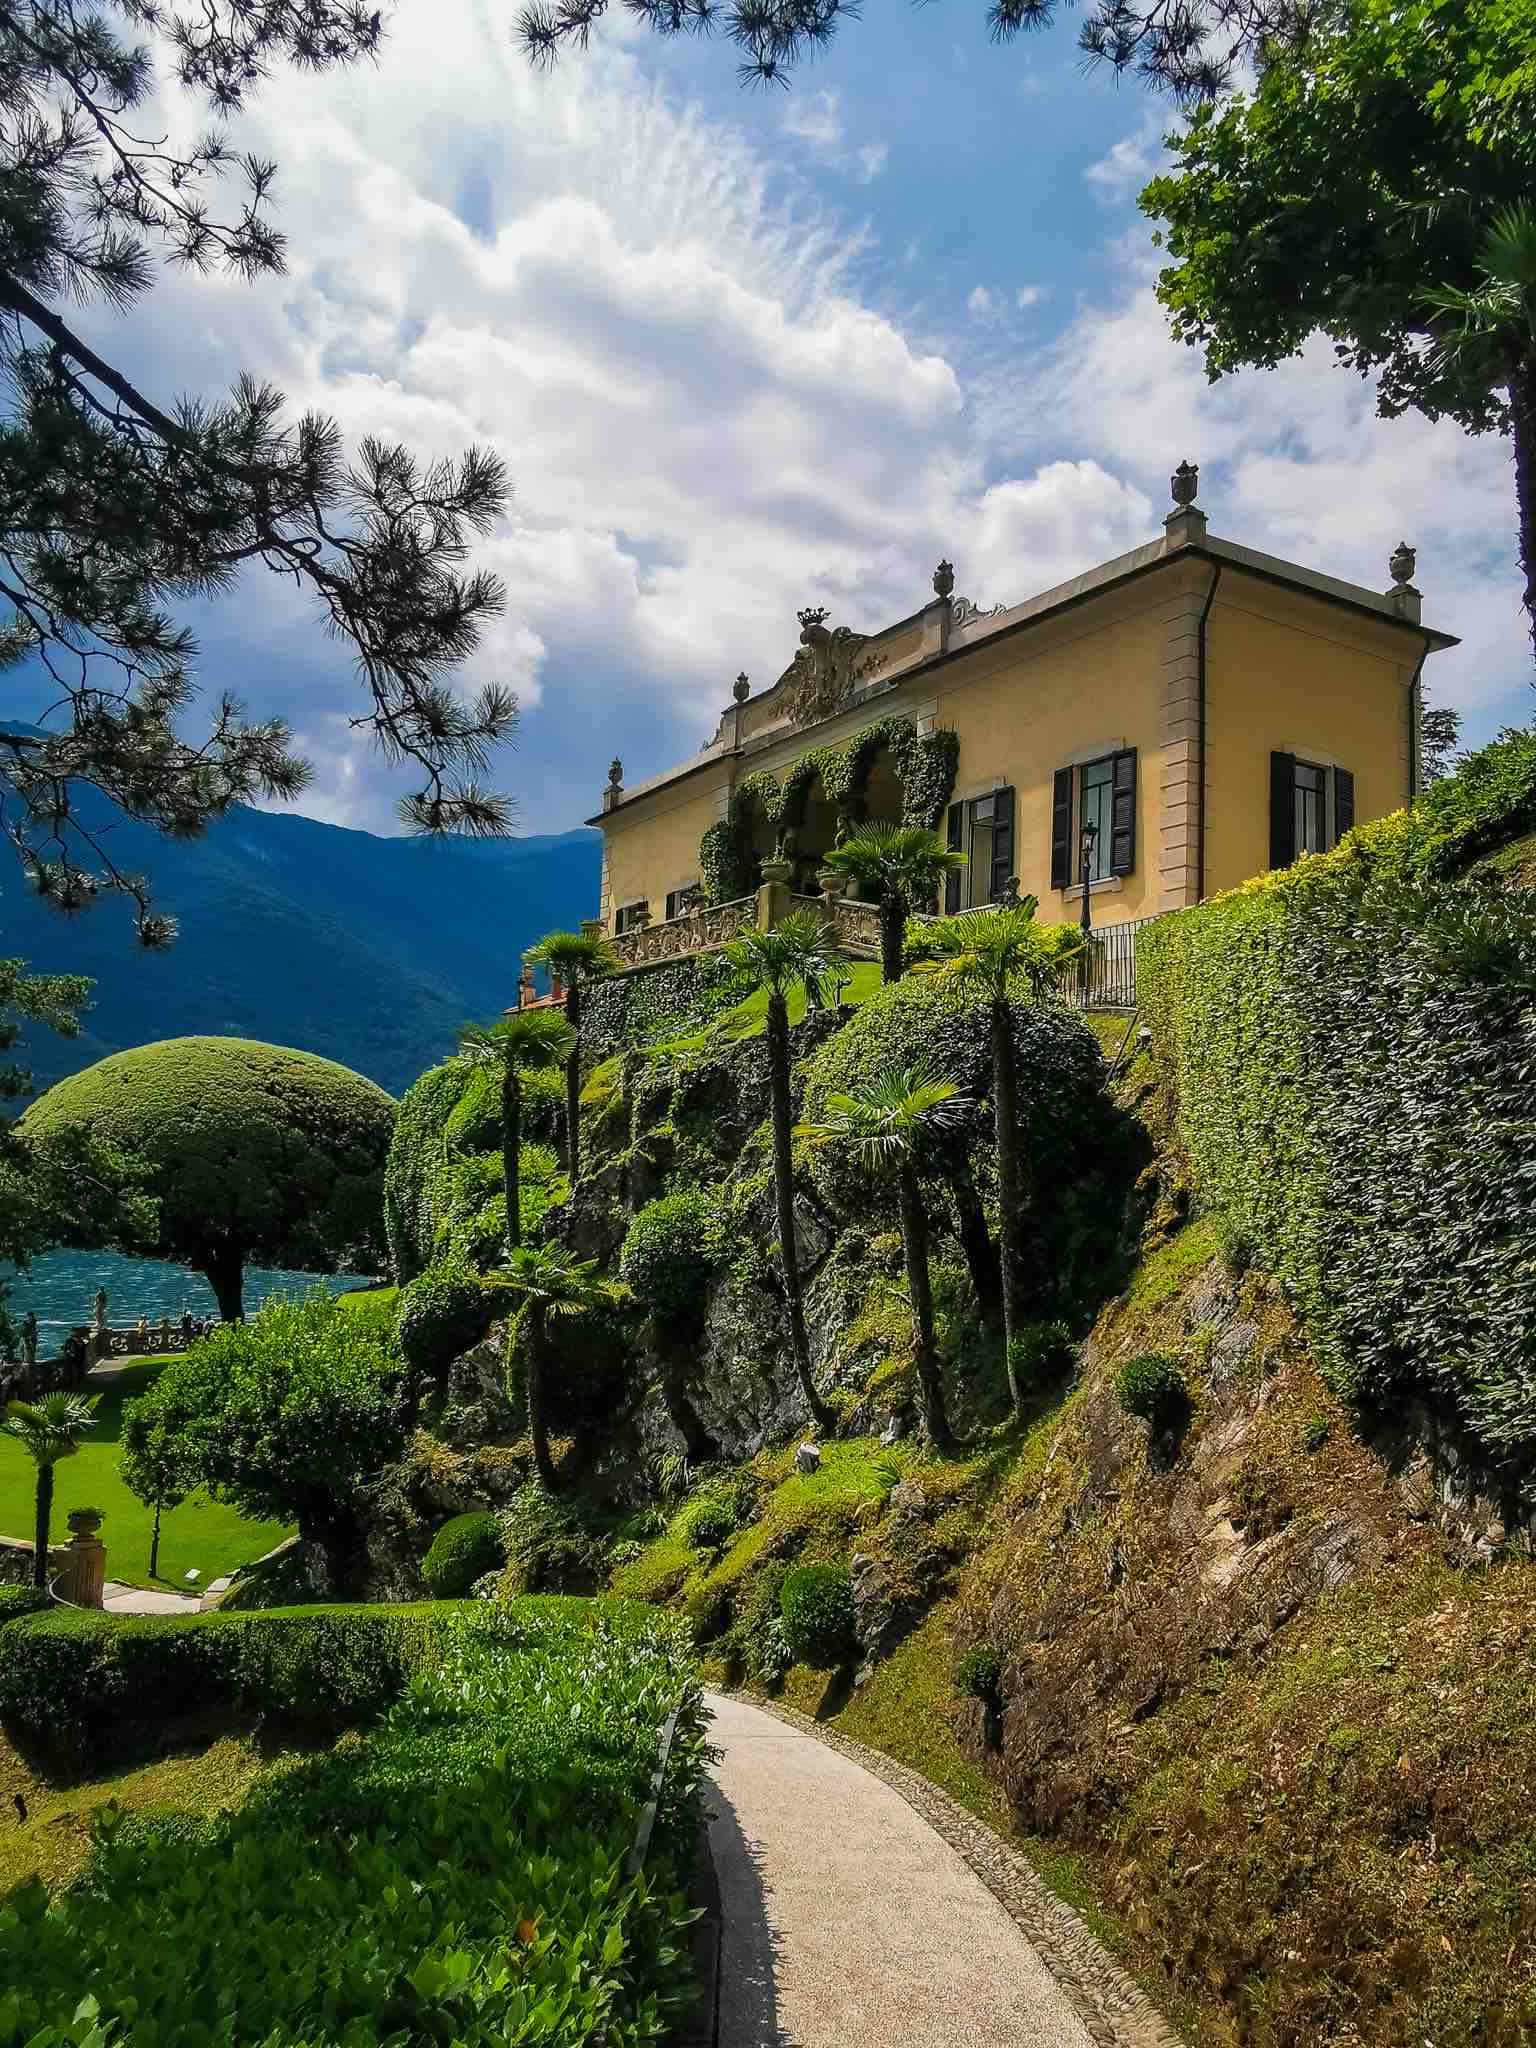 The splendid gardens of Villa del Balbianello, with the ancient holm oak pruned in a curious umbrella shape